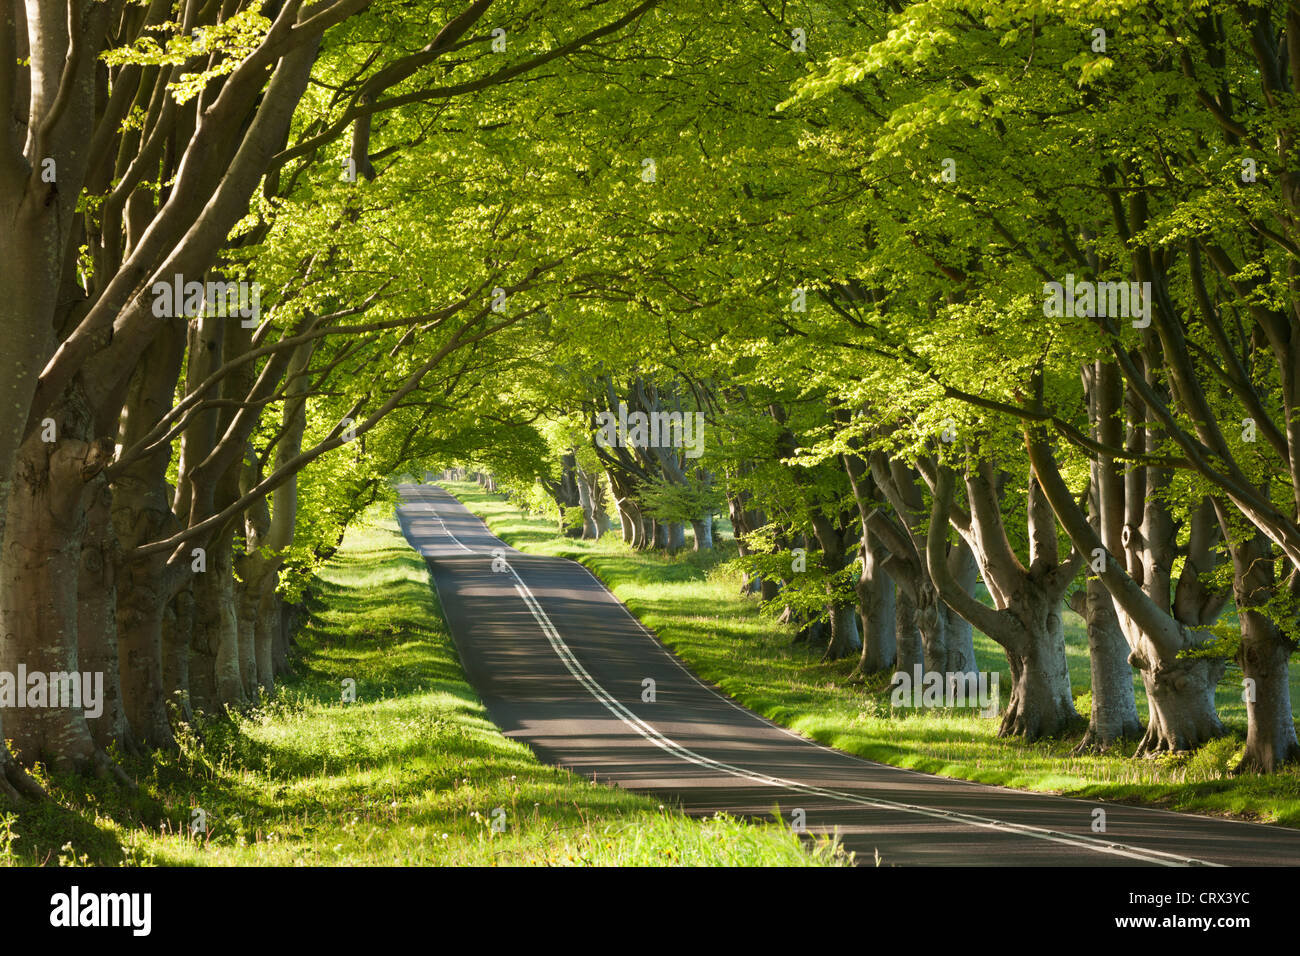 Beech tree lined road in morning sunshine, Wimborne, Dorset, England. Spring (May) 2012. - Stock Image